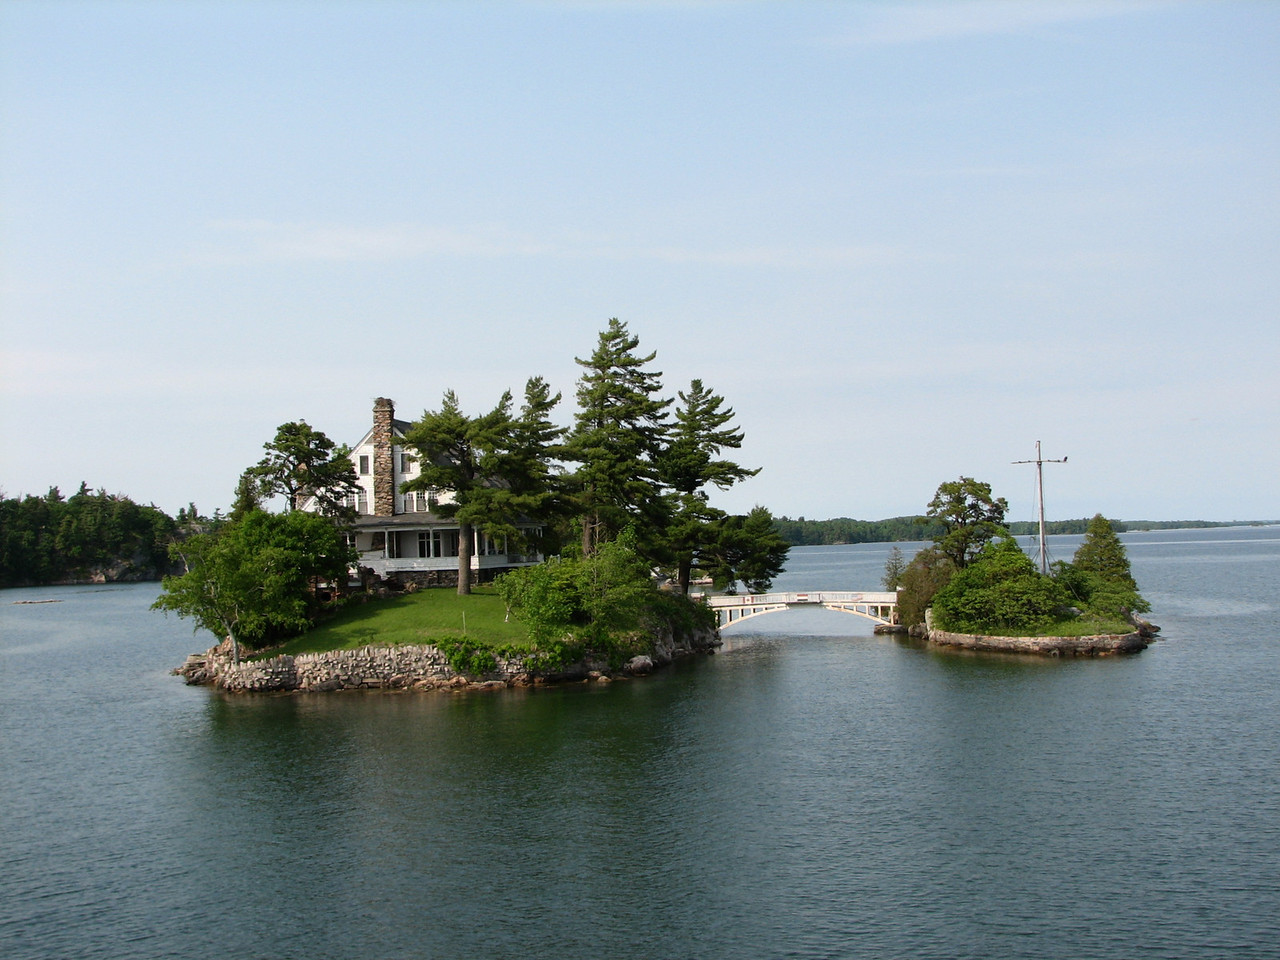 Two of the 1700 islands in the area, is divided by the US-Canada border, making this the smallest international bridge. (Canada is on the left; the US is the small island.)<br /> <br /> To qualify as an island it must have at least two trees on it, otherwise it is an islet or a shoal.  It must be at least two acres in size to build a house or cabin upon it.